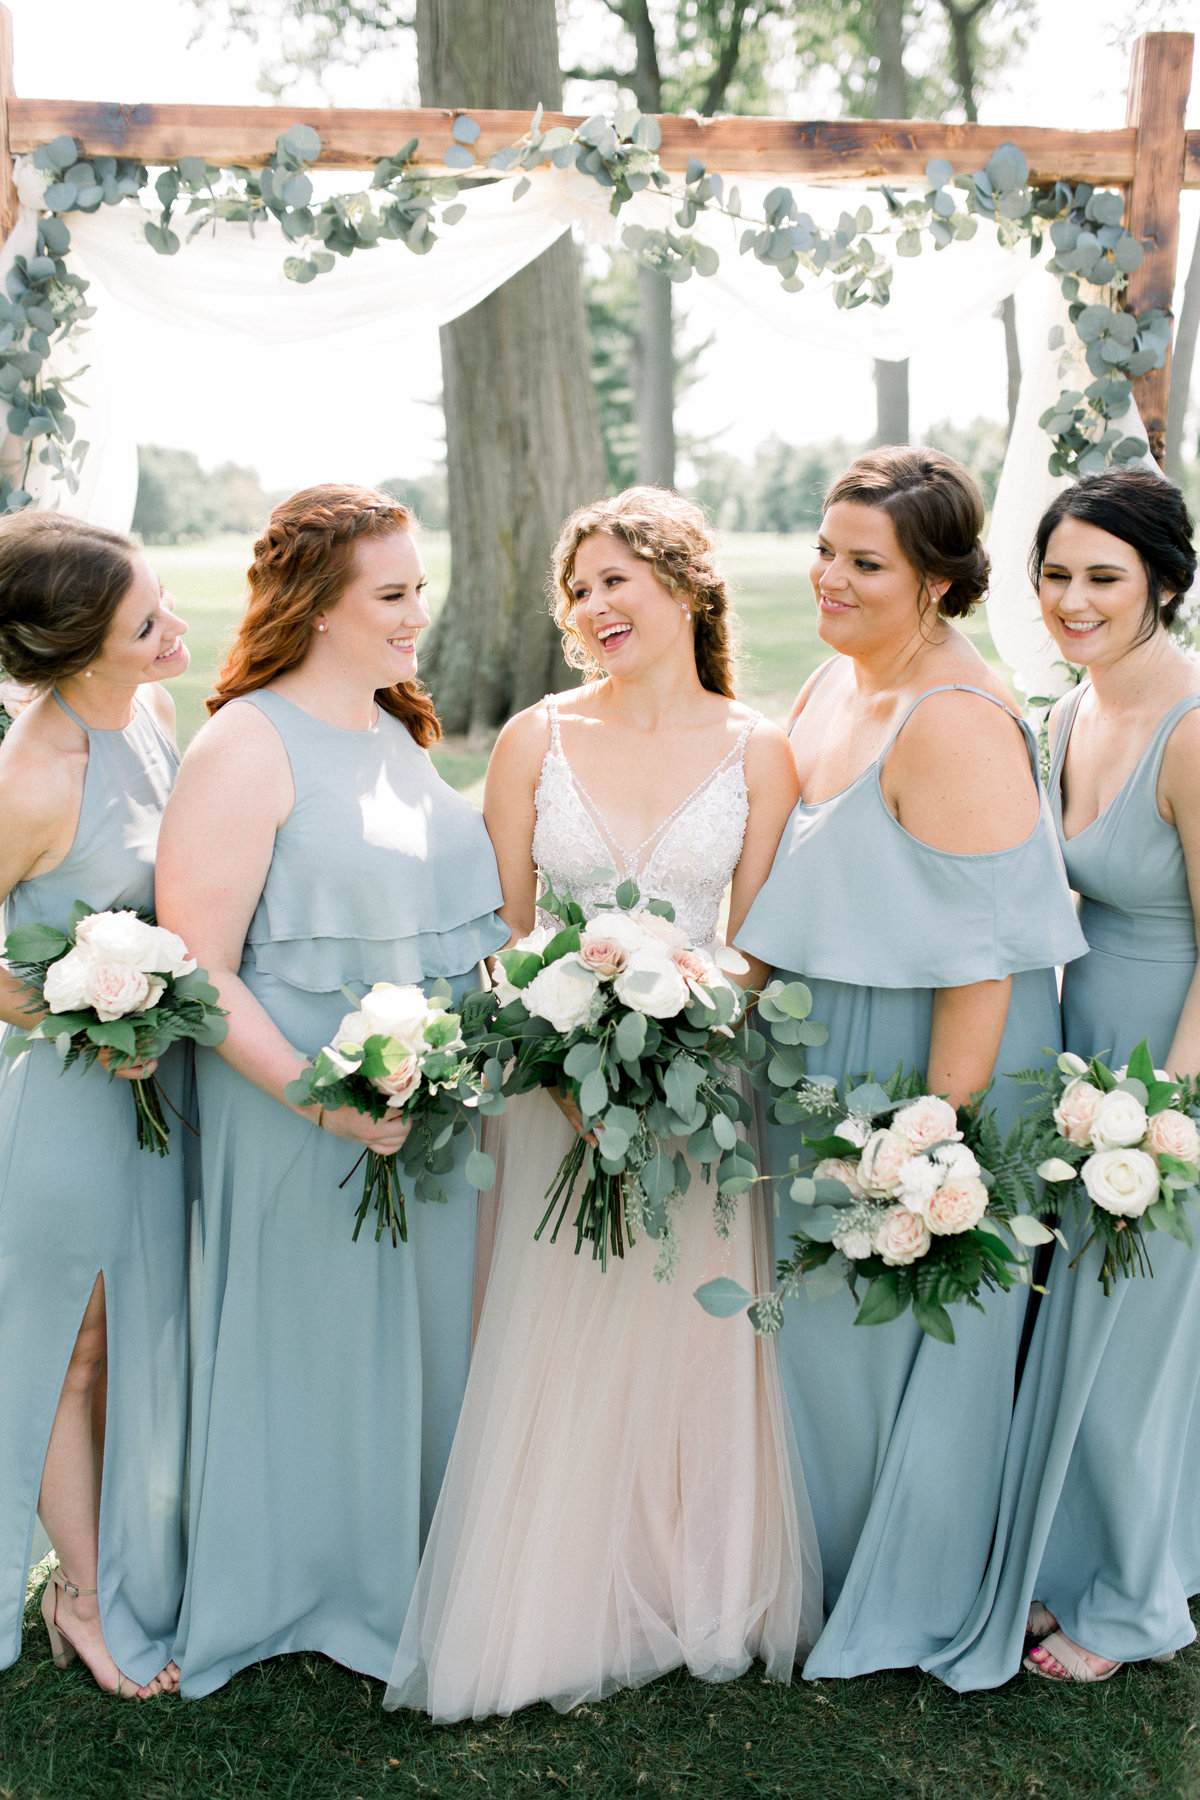 Lansing wedding photographer Cynthia Boyle captures Cait and her bridesmaids on her wedding day